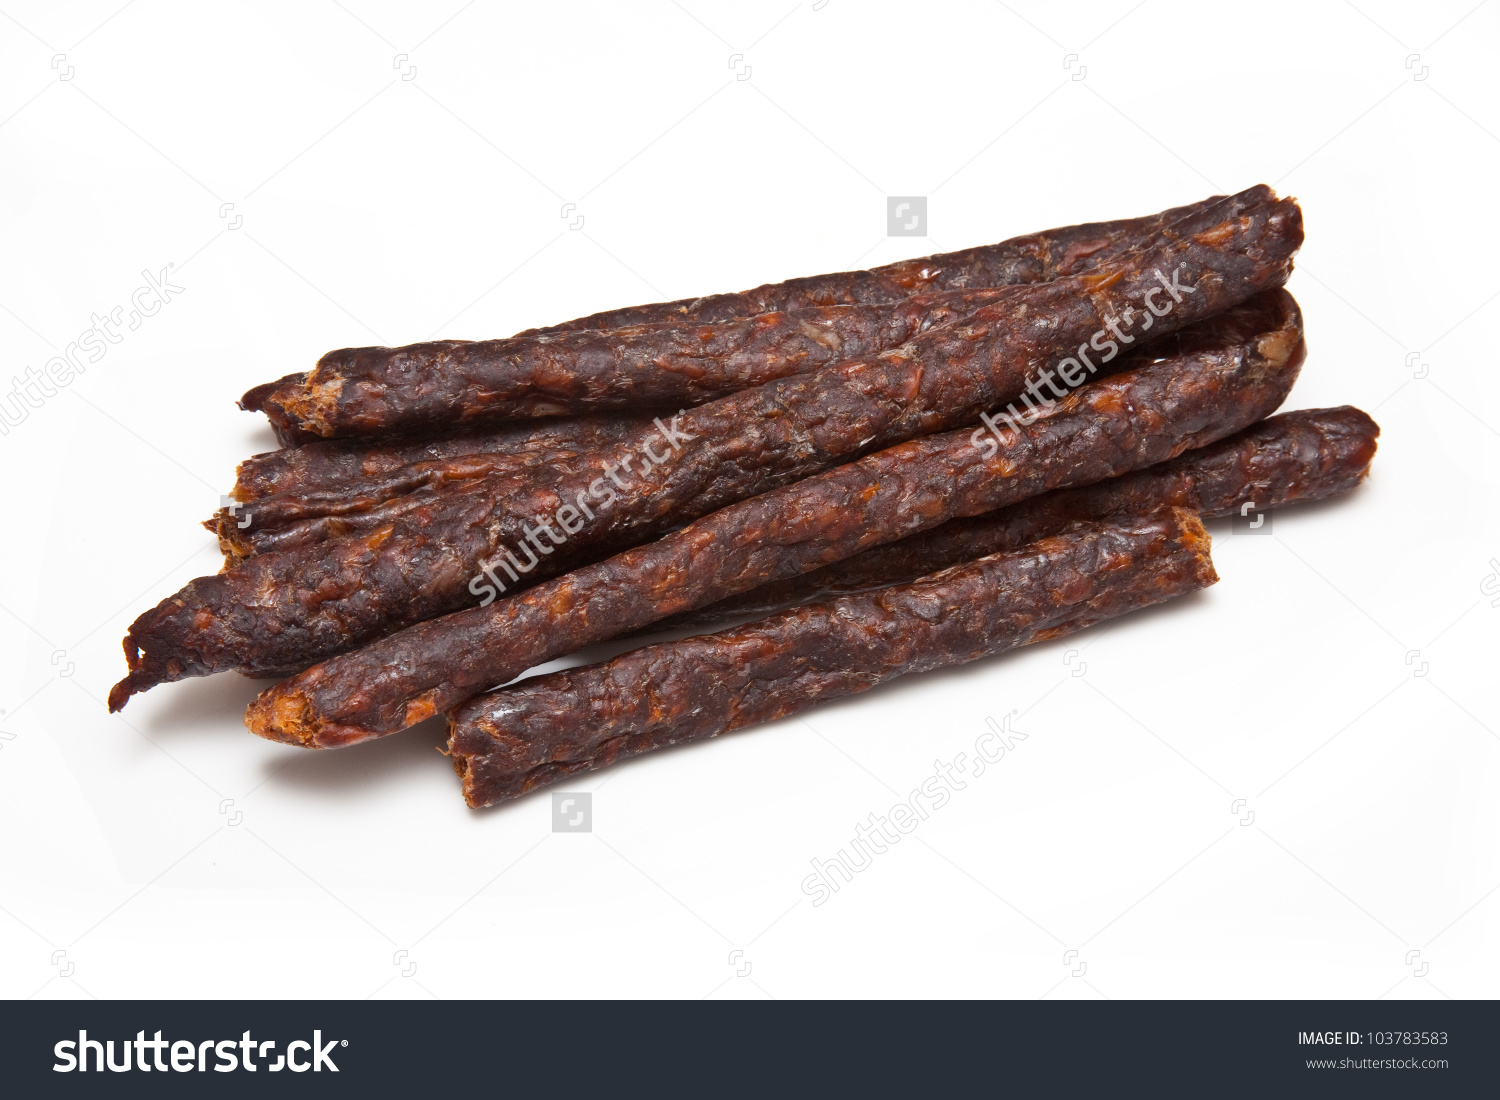 South African Spicy Peri Peri Drywors (Dried Sausage Jerky.